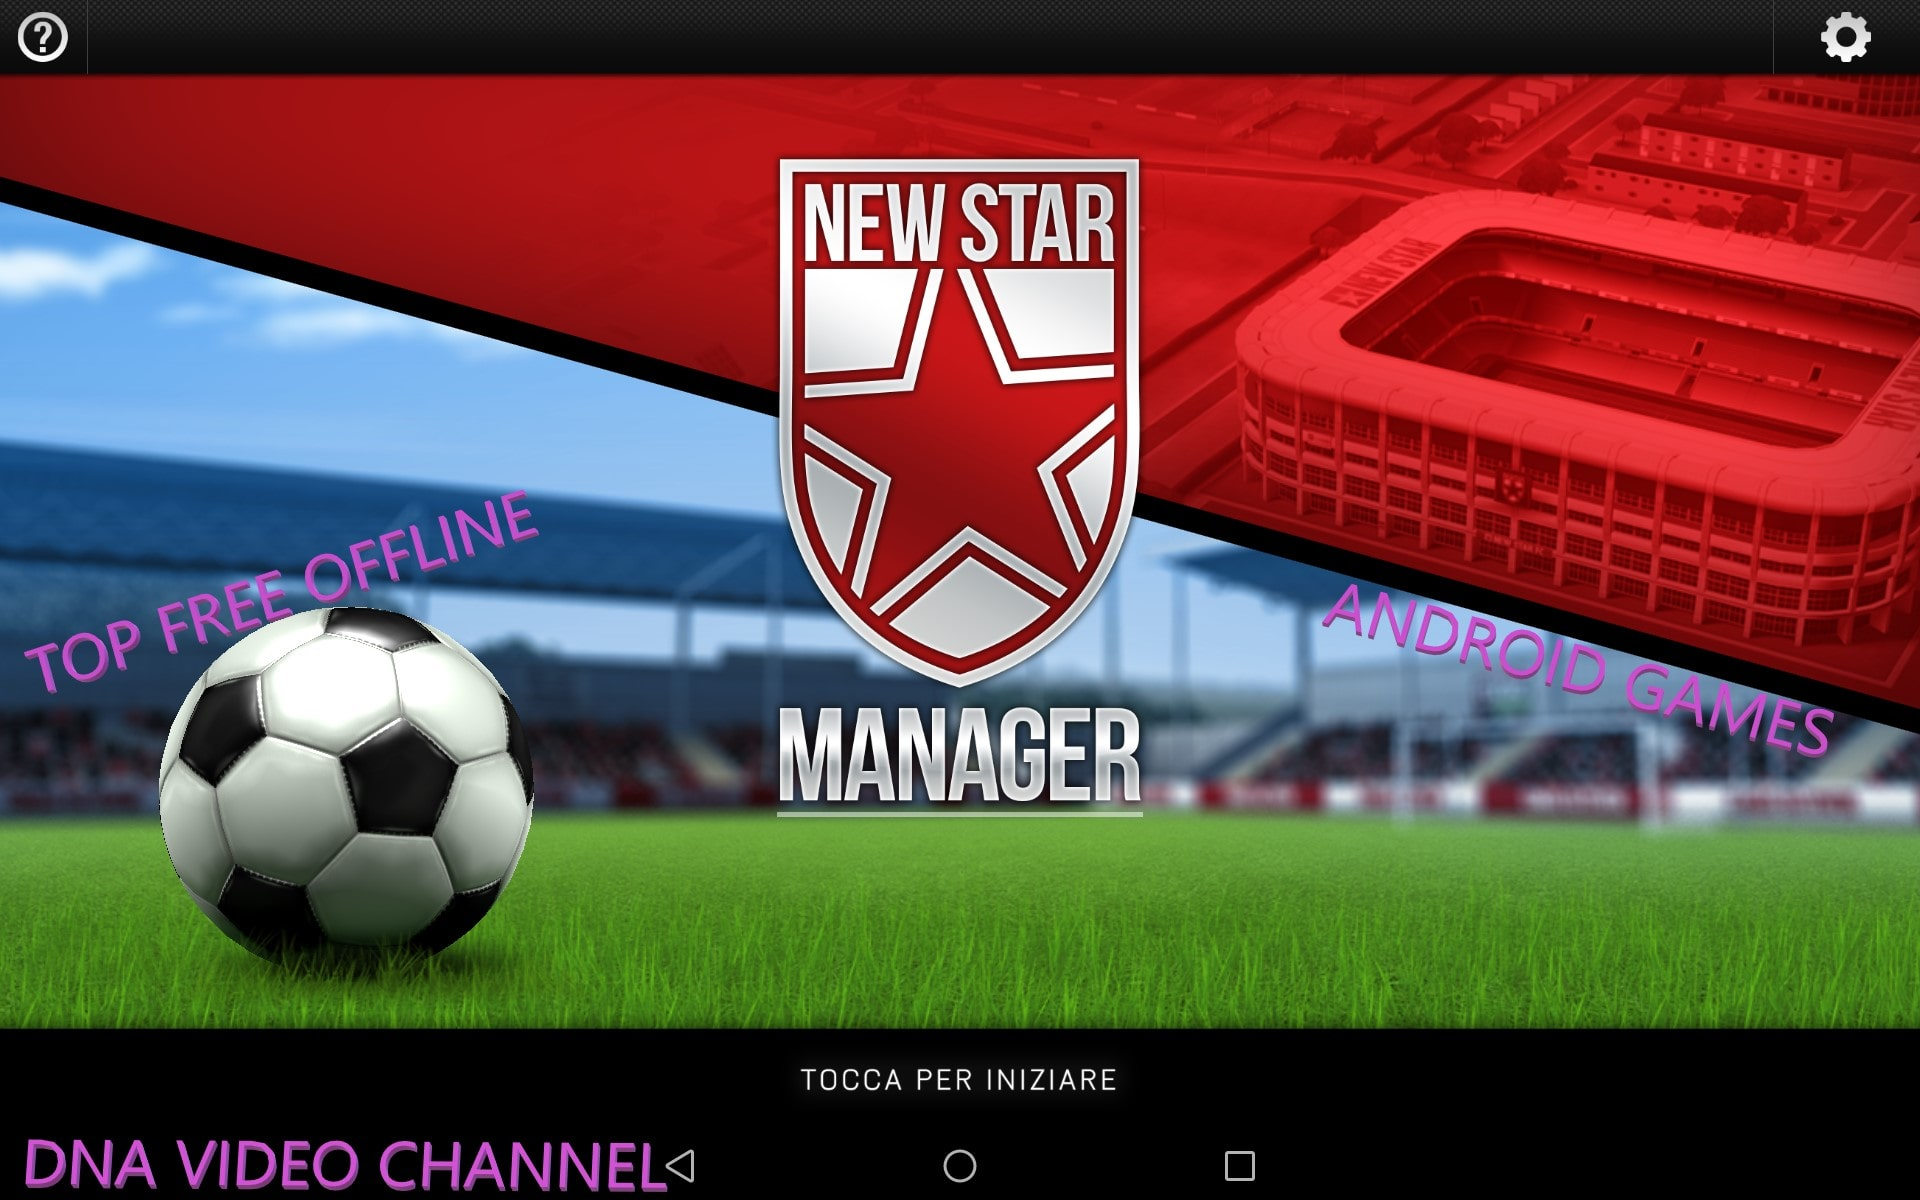 New Star Manager - Android Soccer Game IOS Offline - Review Tricks